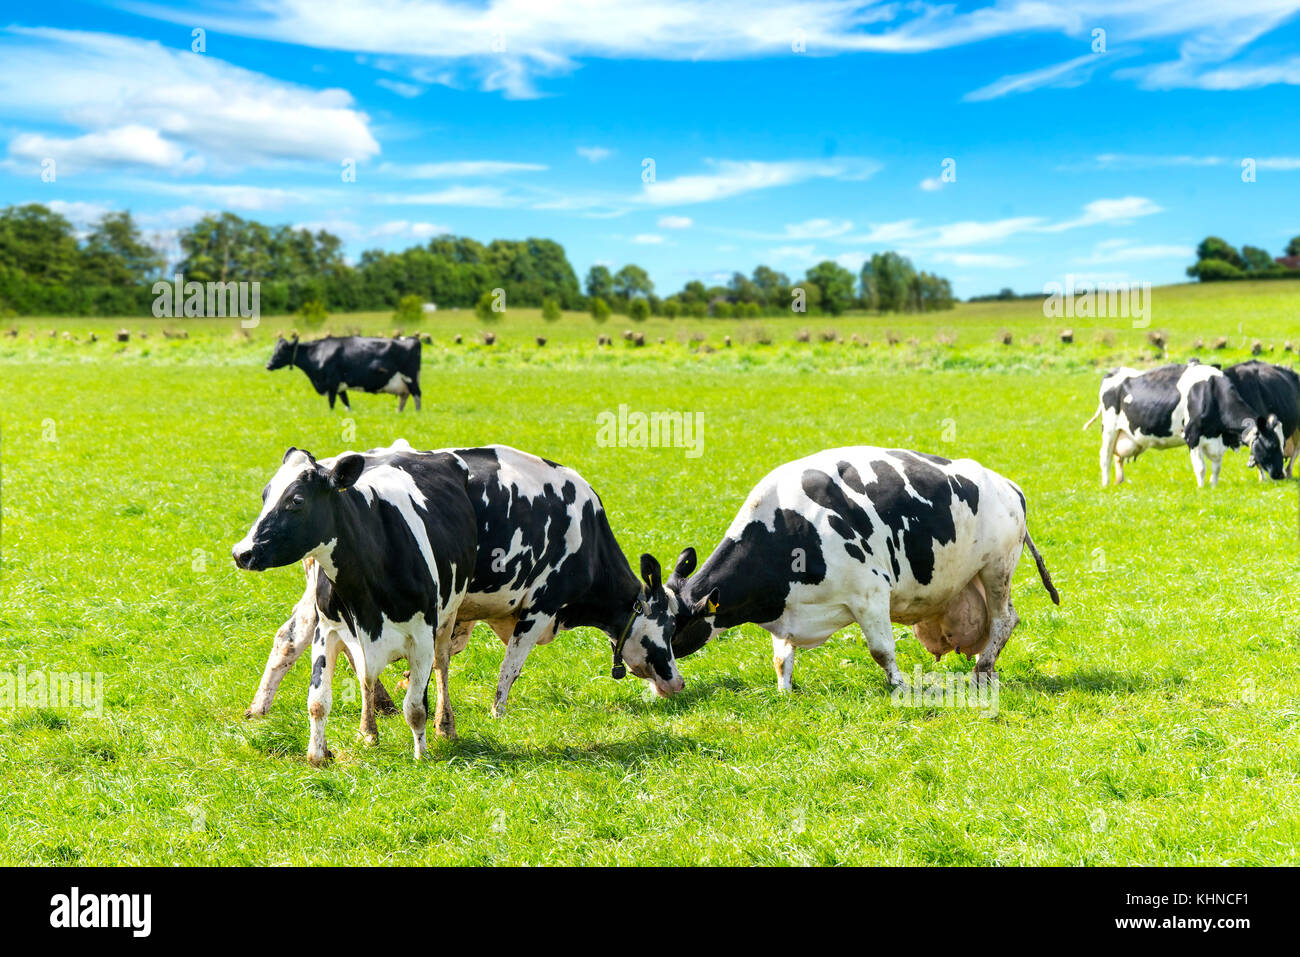 Black and white cattle battle on a green field in the spring under a blue sky - Stock Image